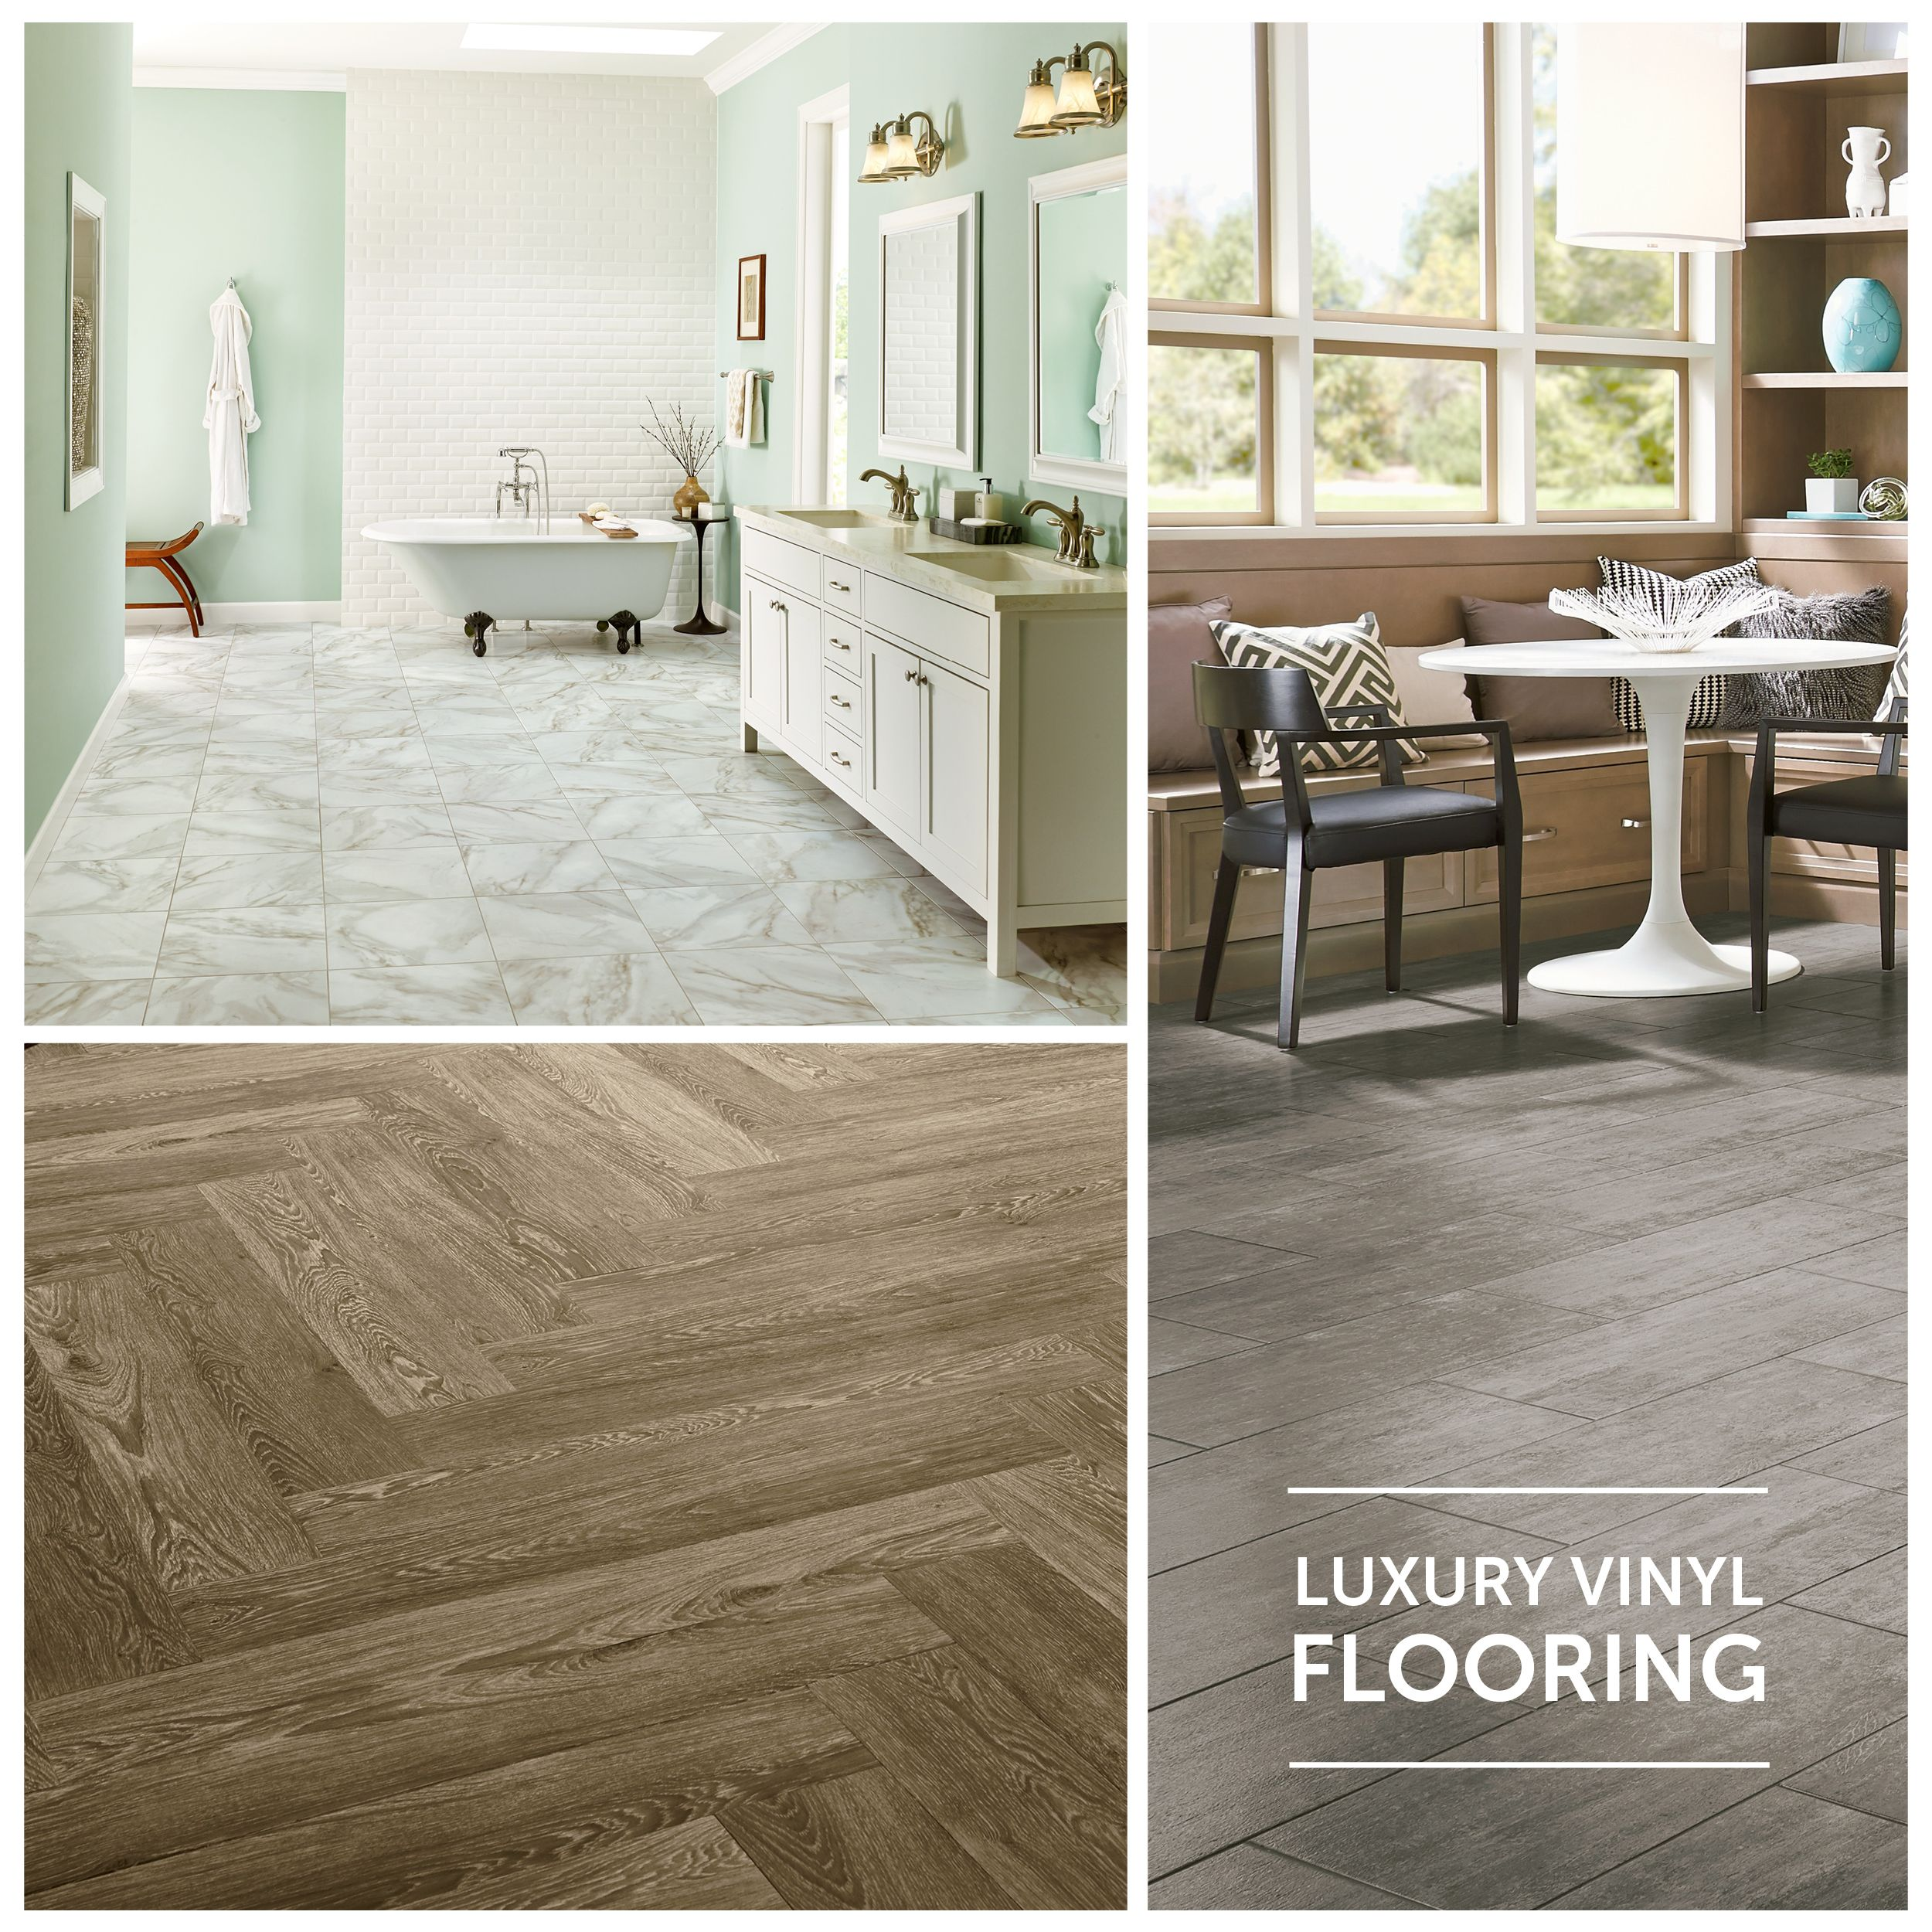 Luxury vinyl flooring stone wood looks lvt lvp for Decor flooring